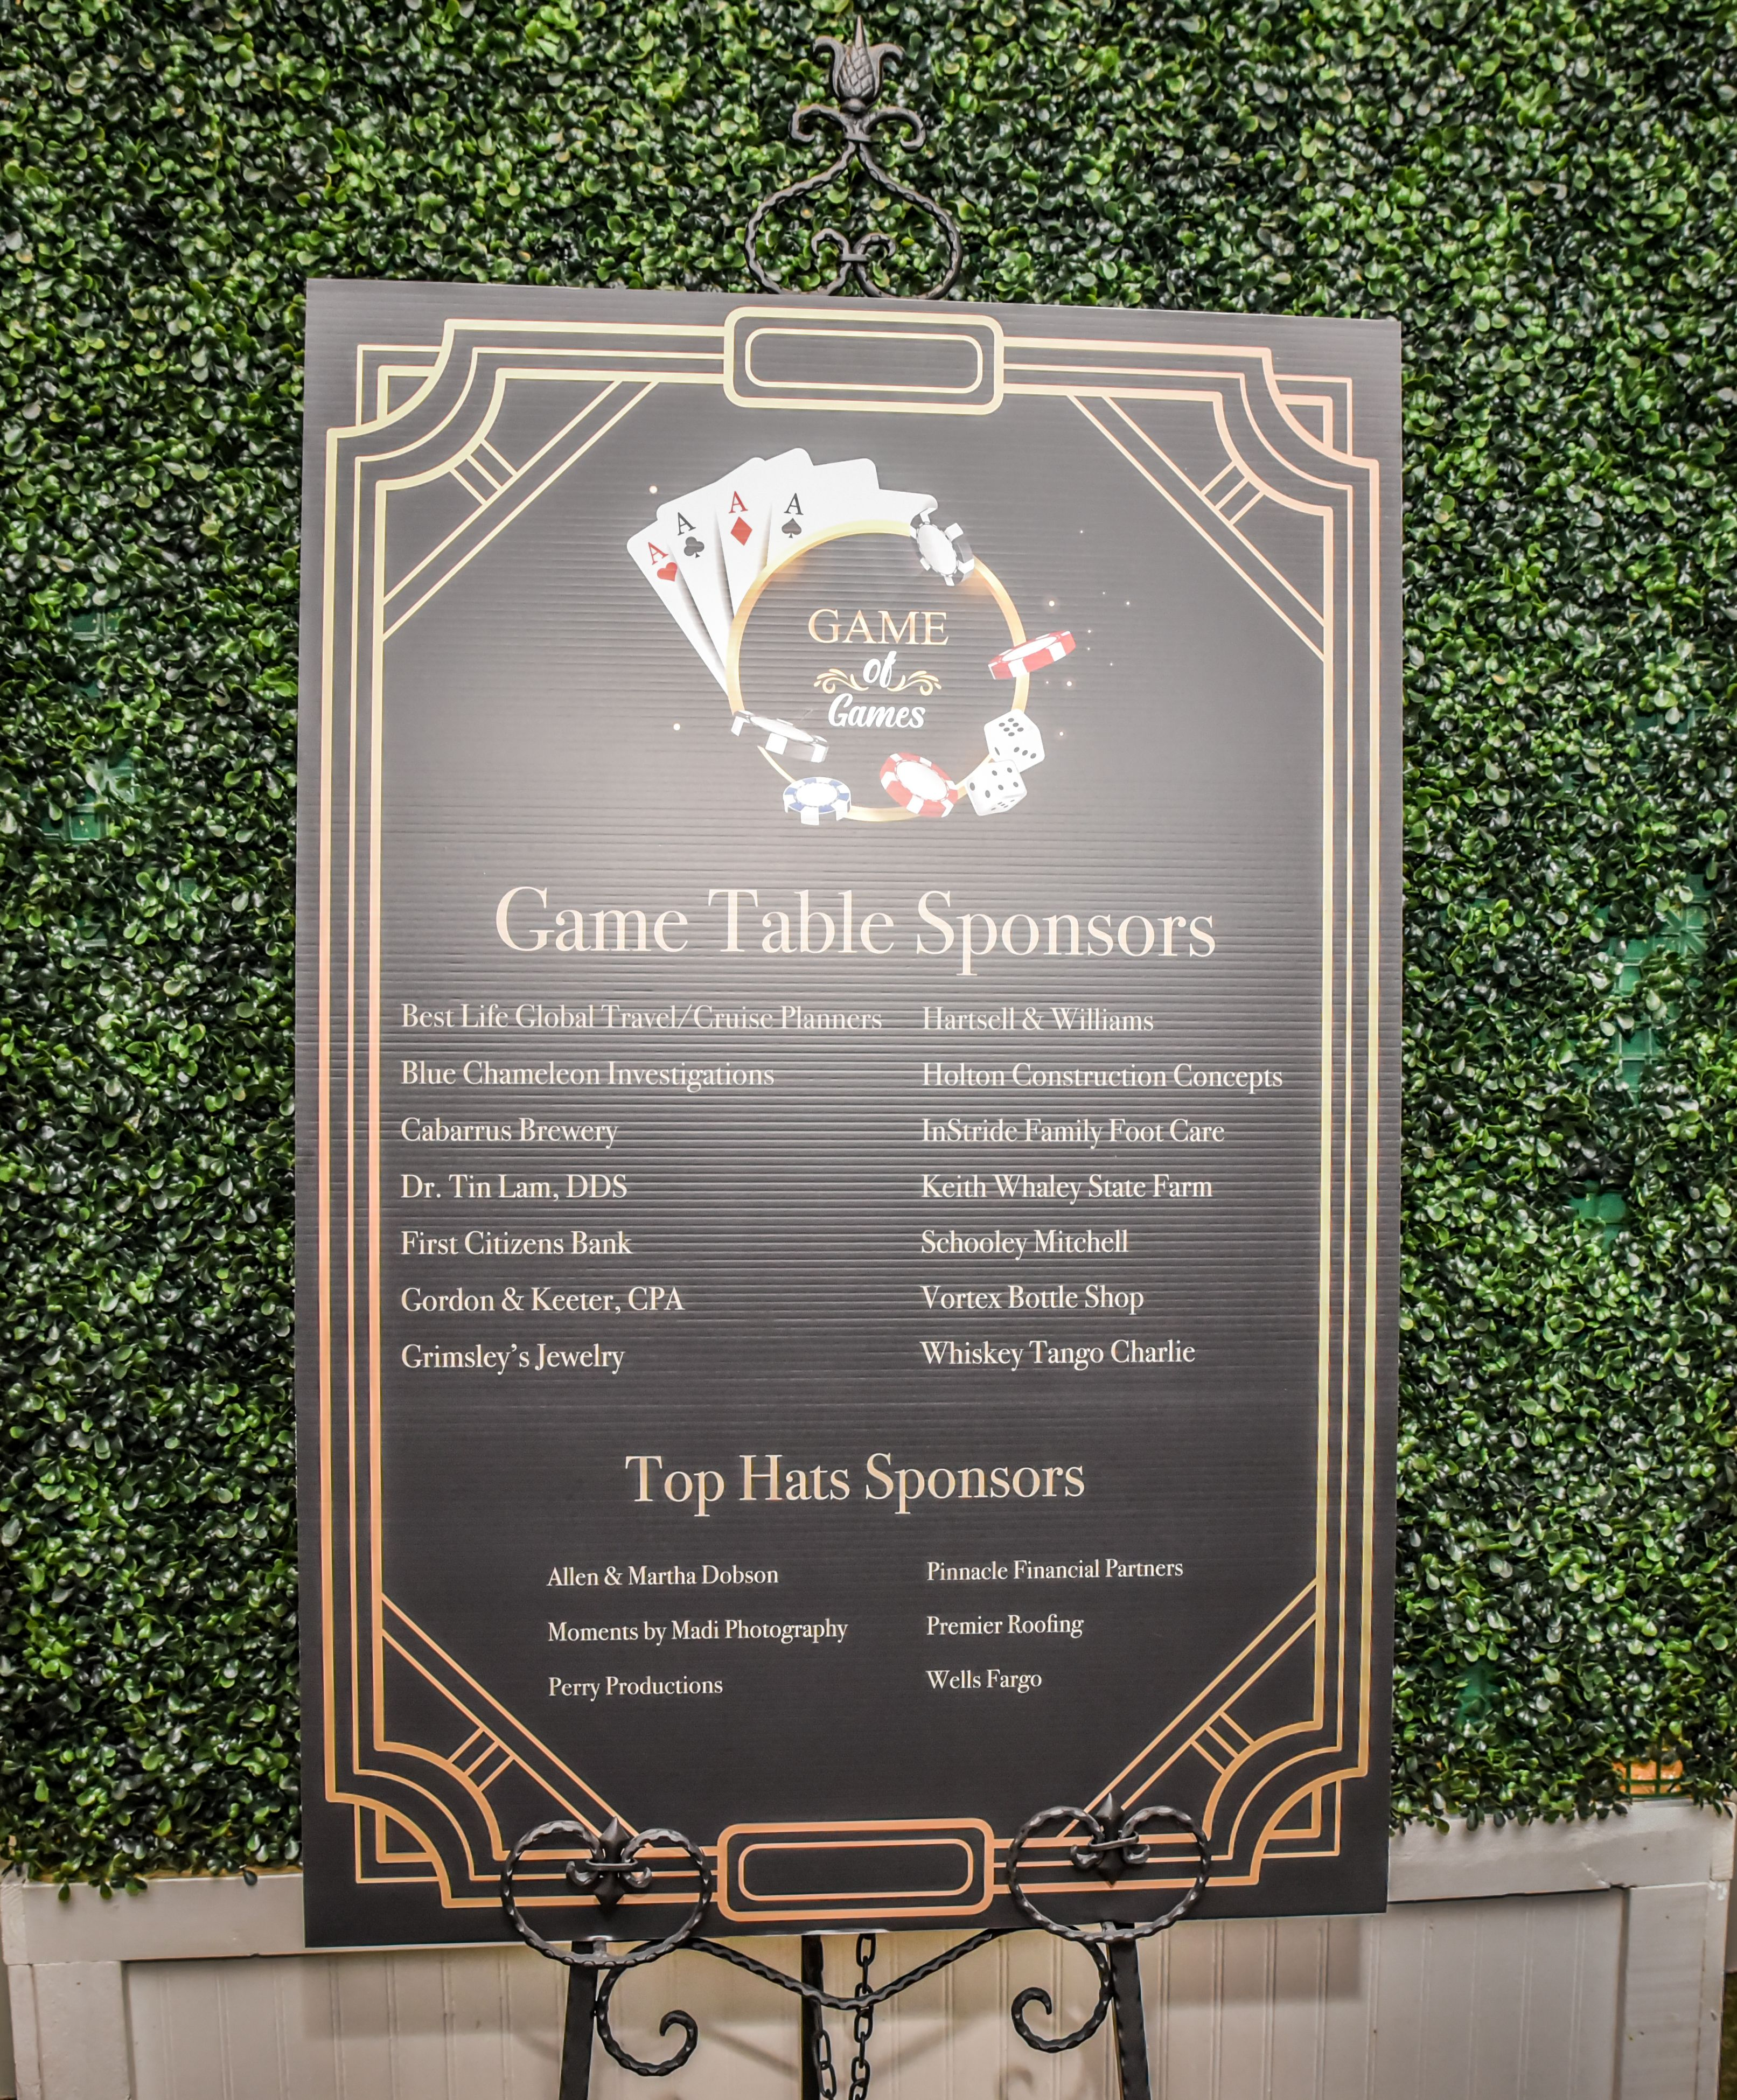 Game Table Sponsors